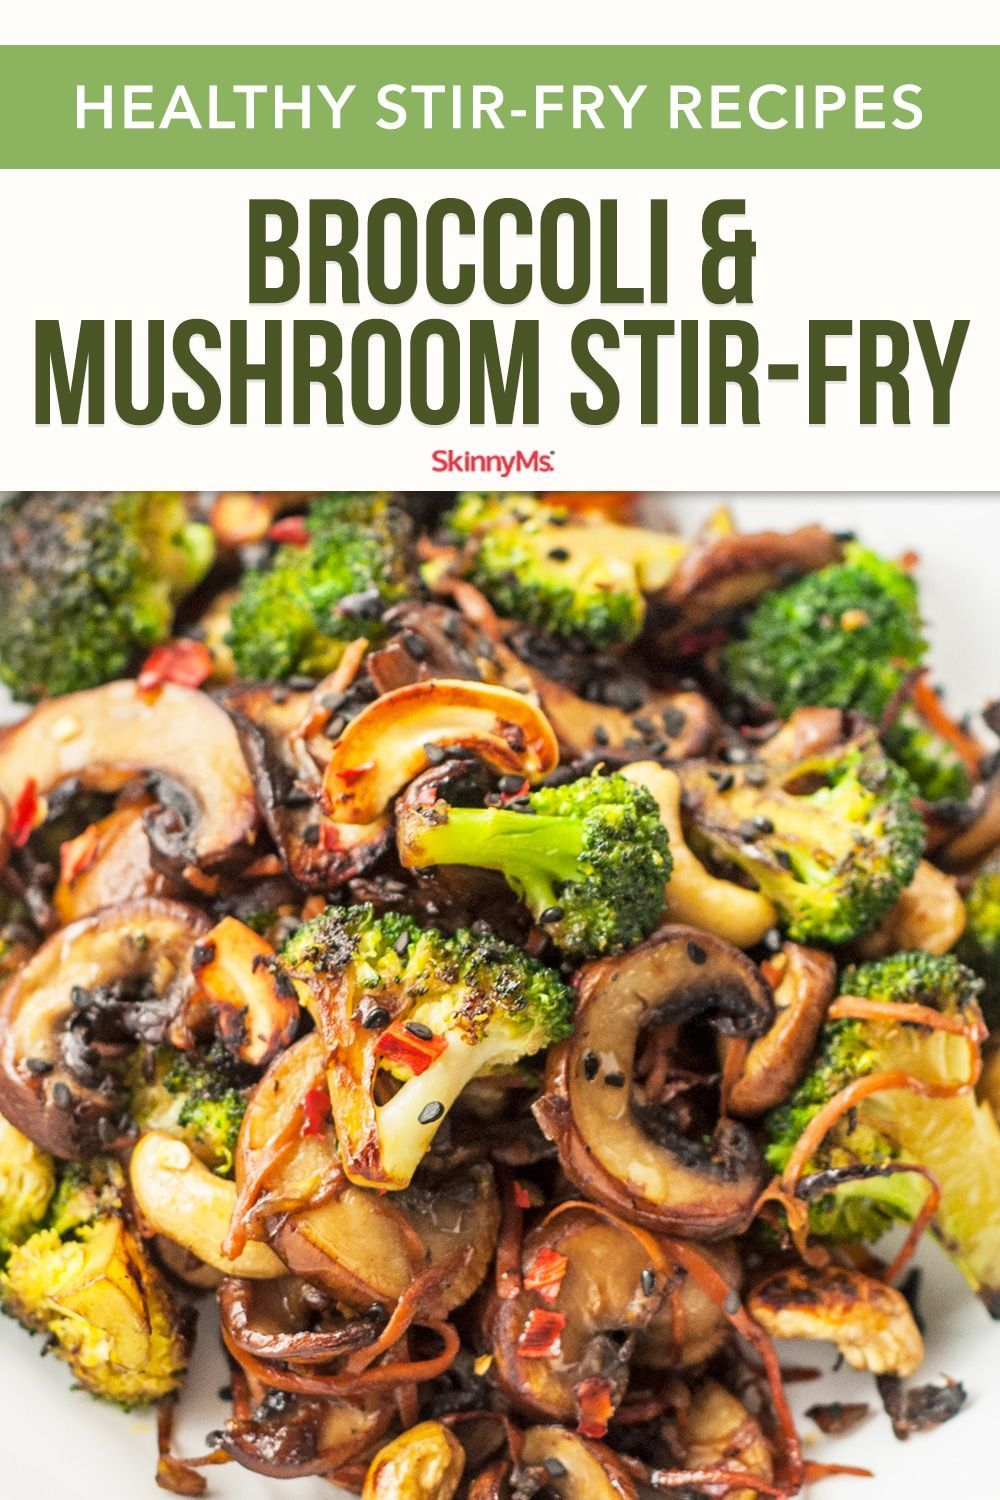 Broccoli and Mushroom Stir-Fry | Quick & Easy Recipes